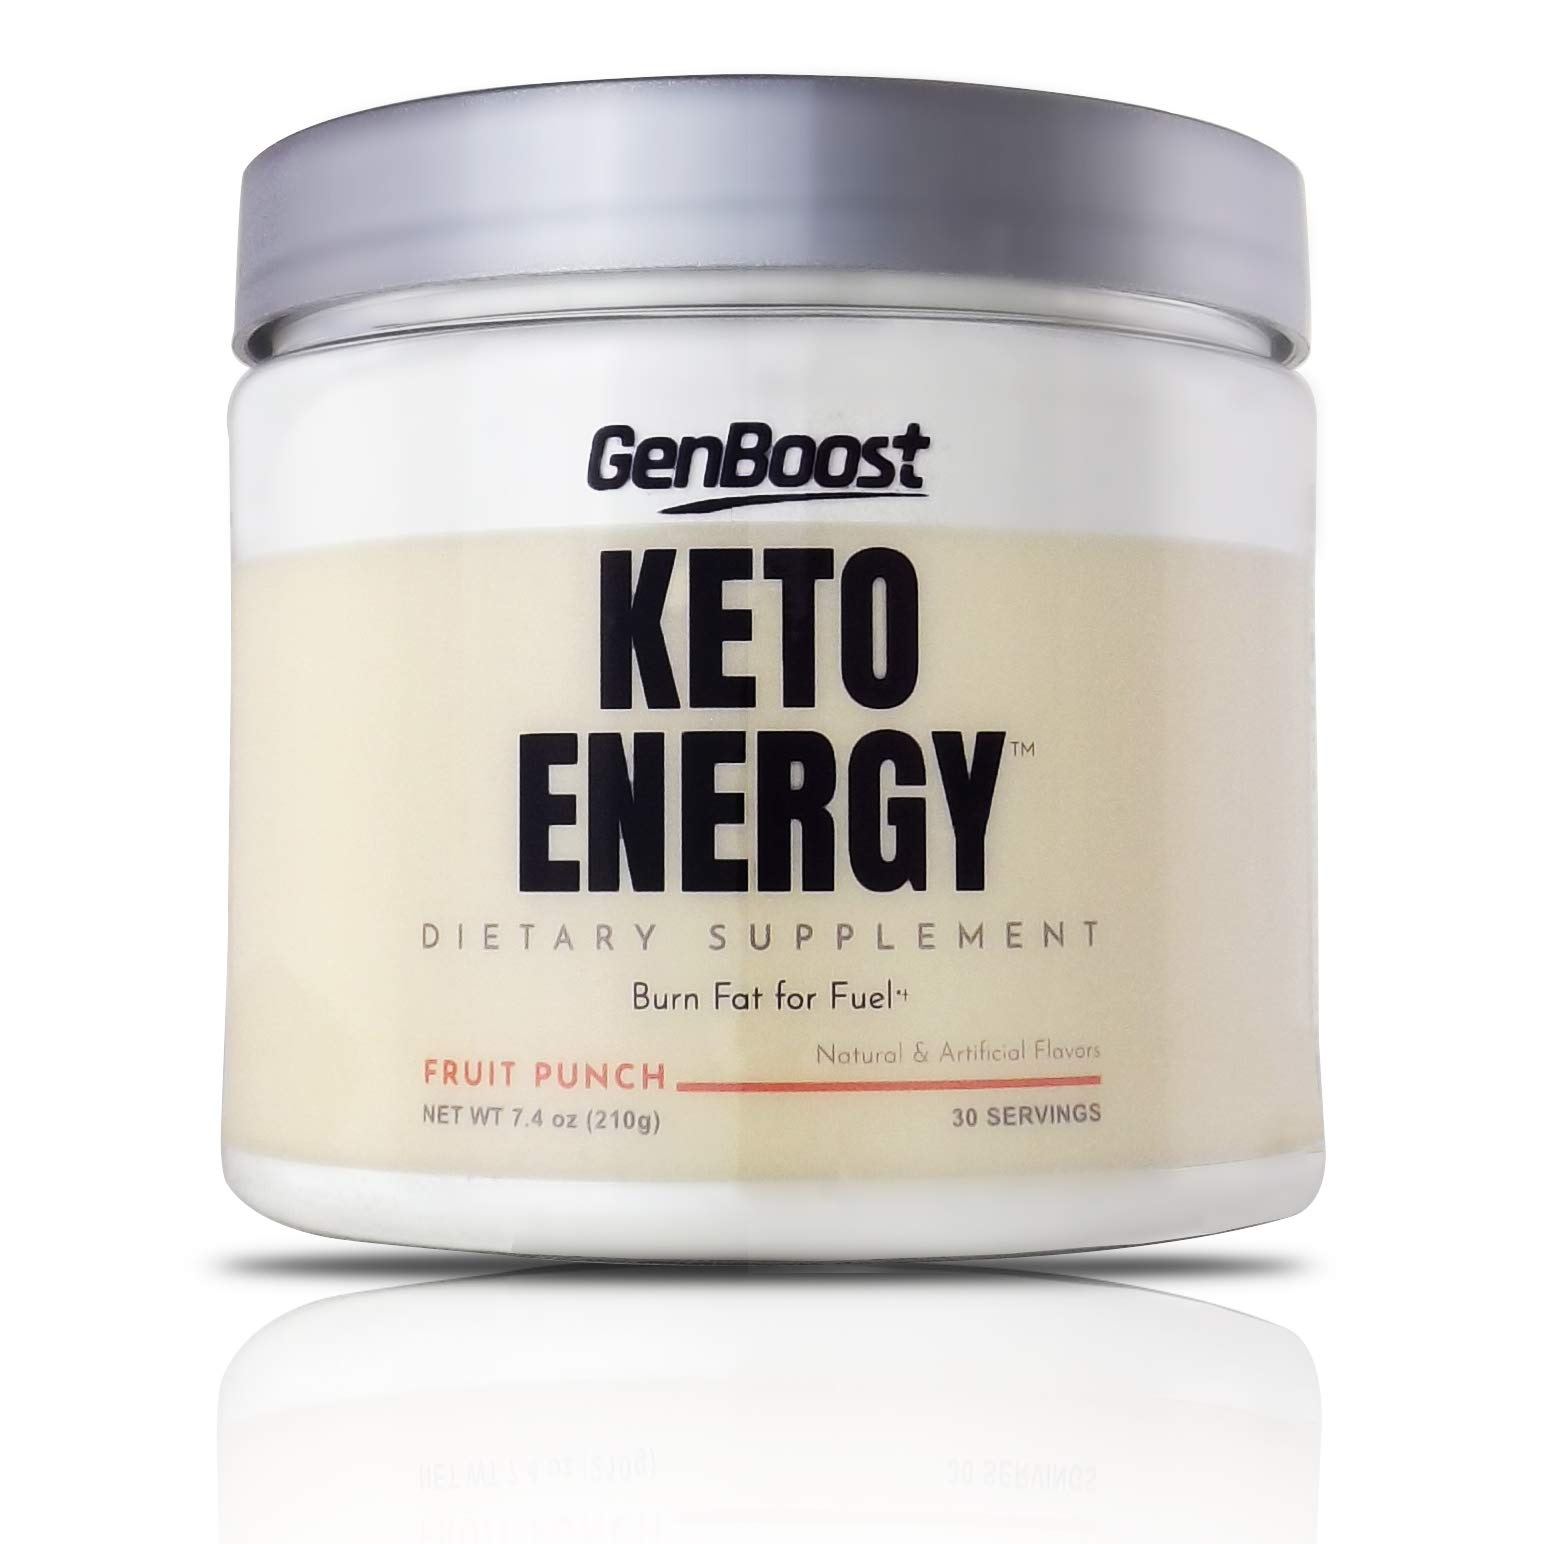 GenBoost - Keto Energy - 30 Day Slimming Drink (30 Servings) - Powder Drink Mix to Reach Ketosis, Reduce Stress & Boost Energy - Exogenous Ketones & BHB Salts for Any Ketogenic Diet - Fruit Punch by GenBoost